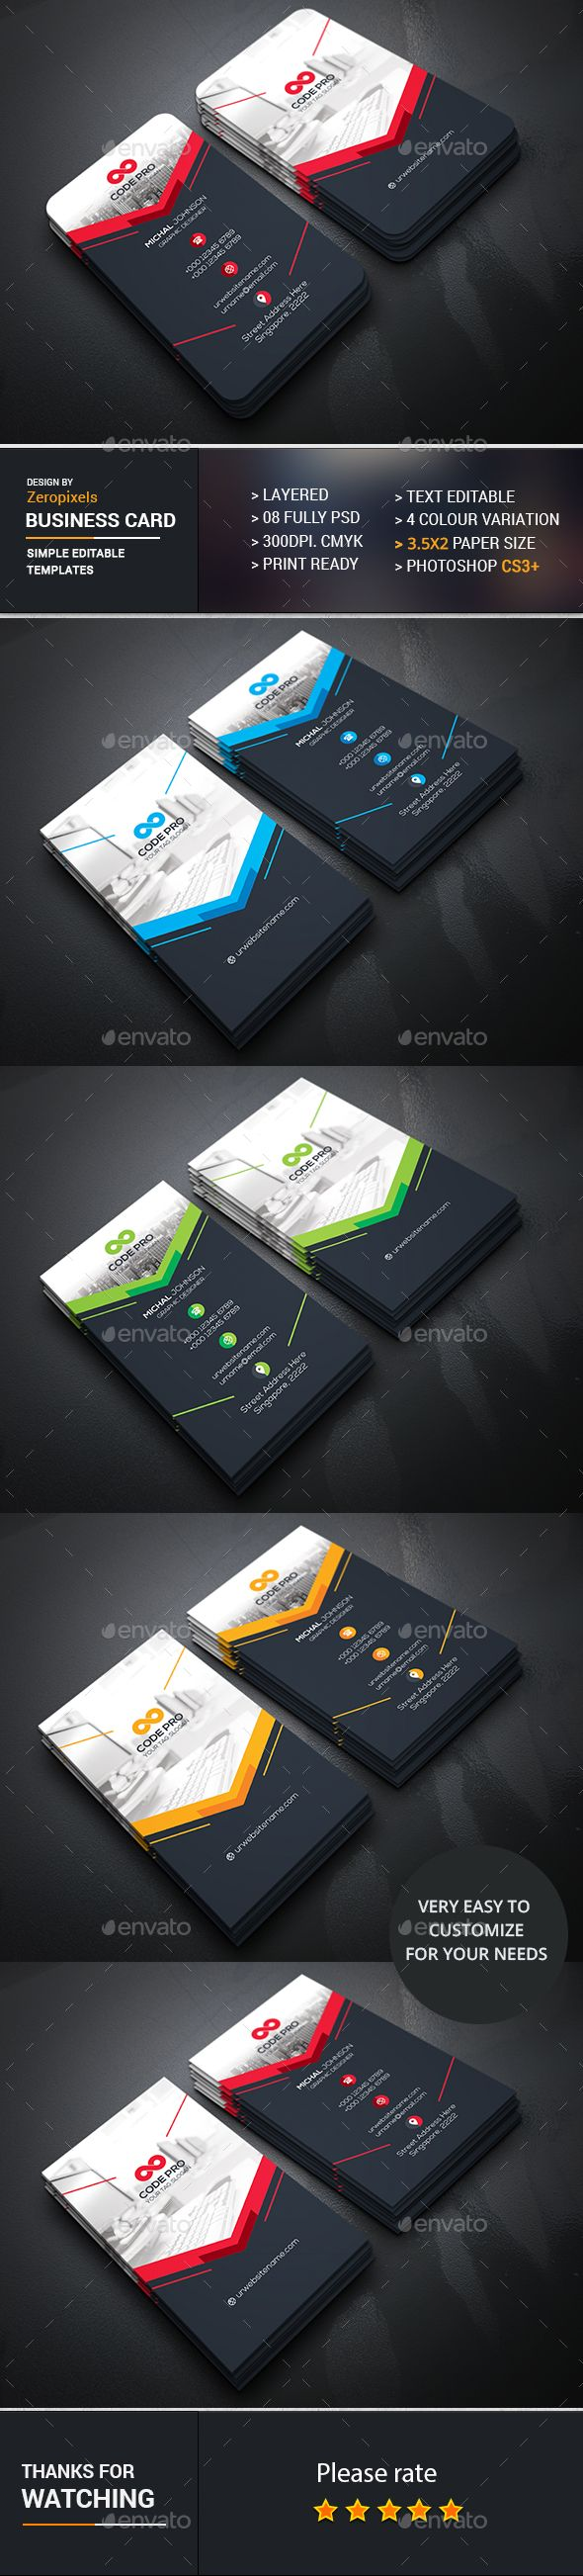 19 awesome business card template in photoshop cs3 graphics business card template photoshop cs3 choice image card design reheart Choice Image